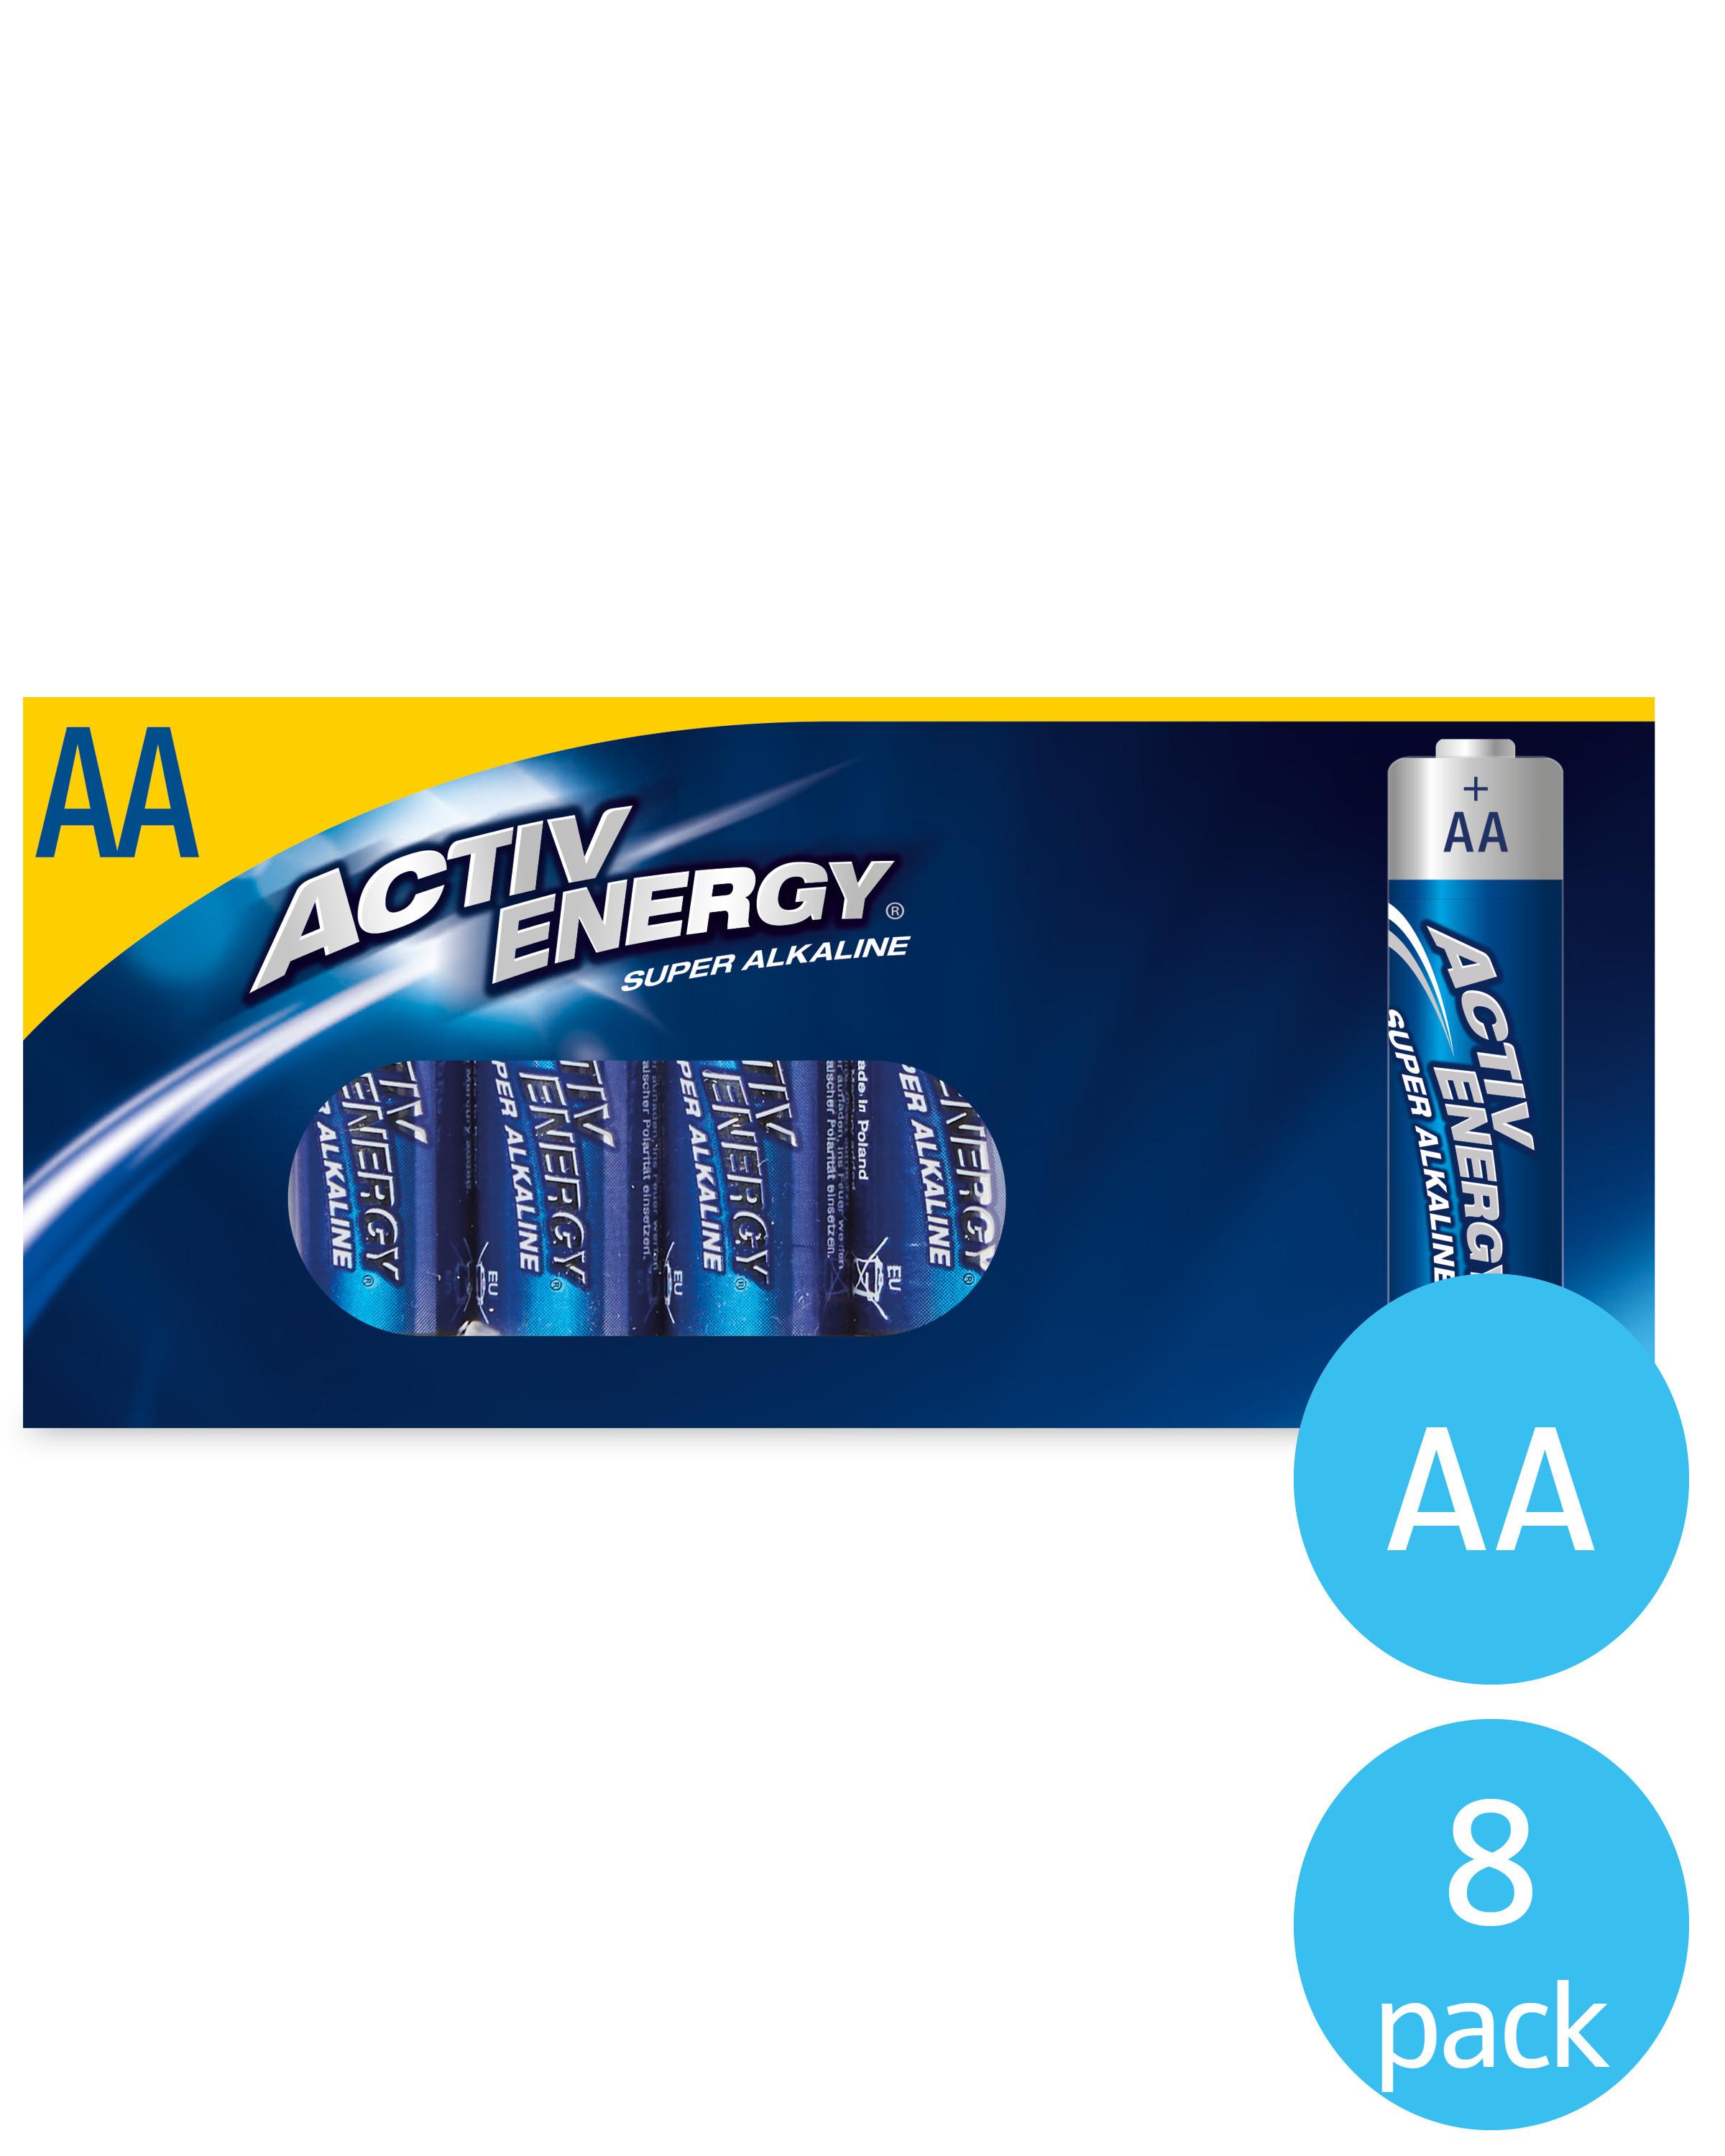 AA Activ Energy Batteries 8 Pack